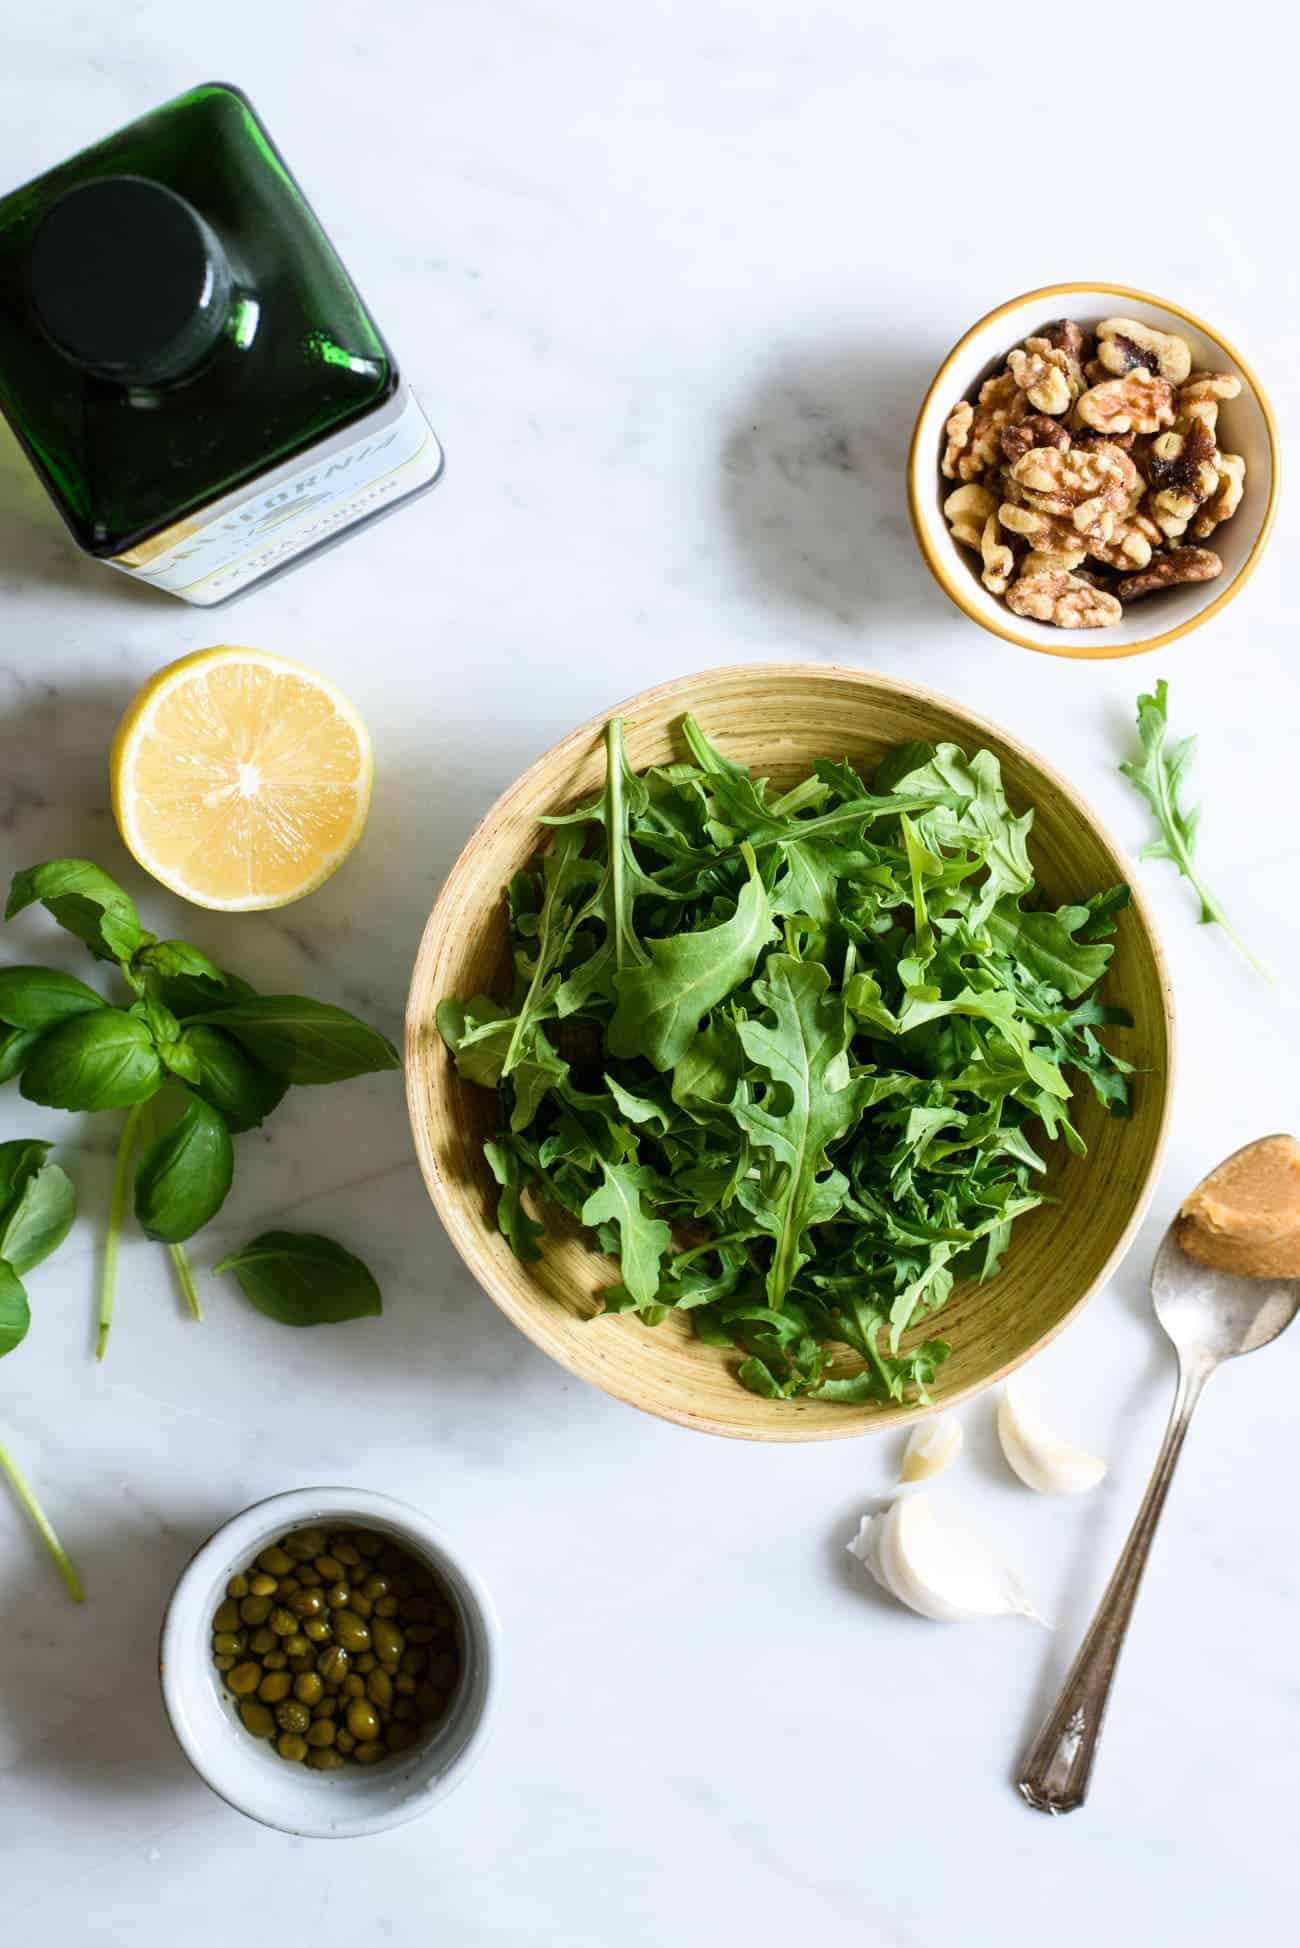 Overhead view of ingredients to make arugula-walnut pesto on a marble table